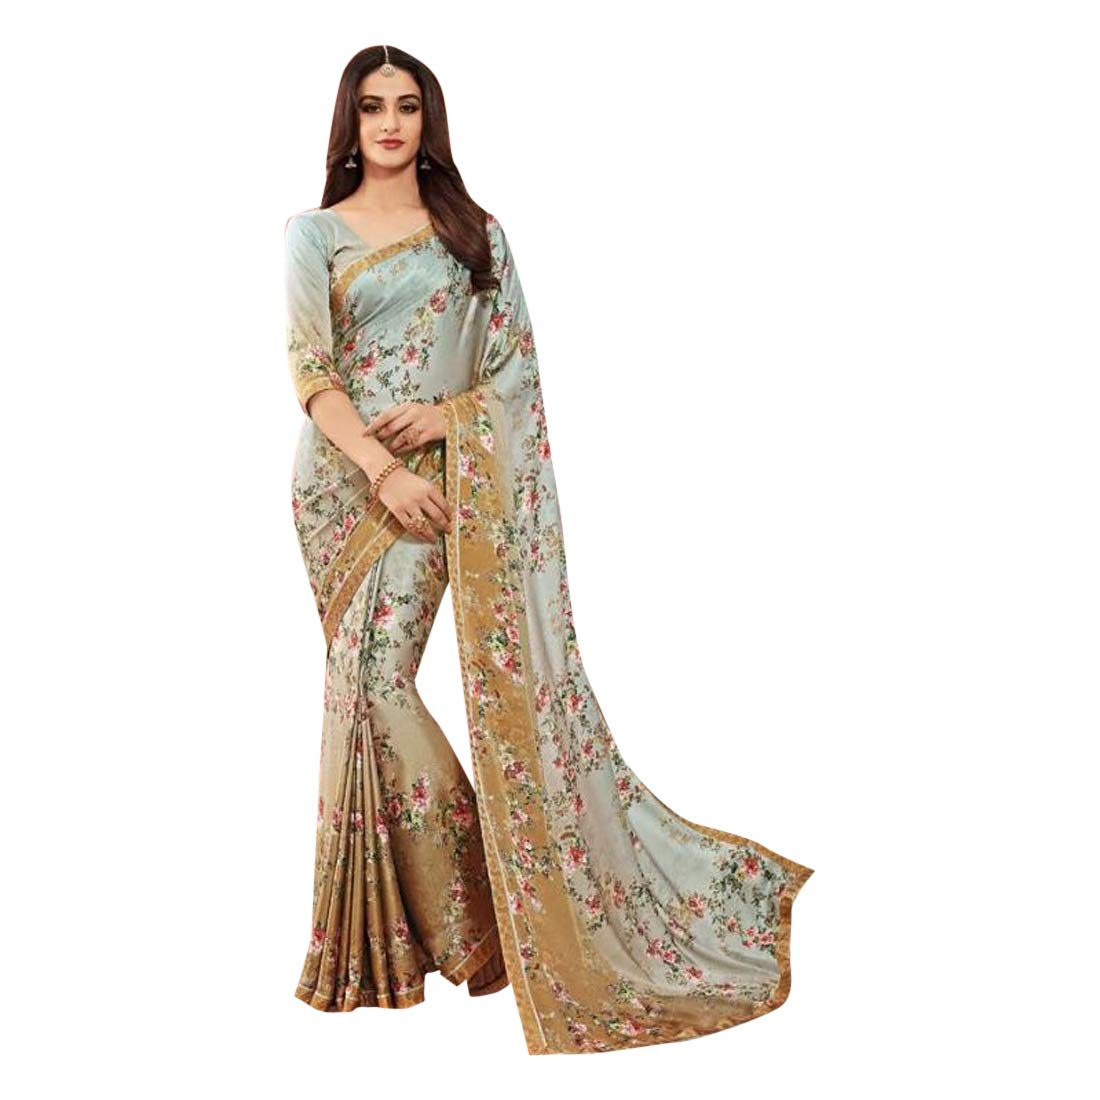 Stylish Indian Designer Sari Floral Swarovski stone work Saree with Blouse for Women 7506